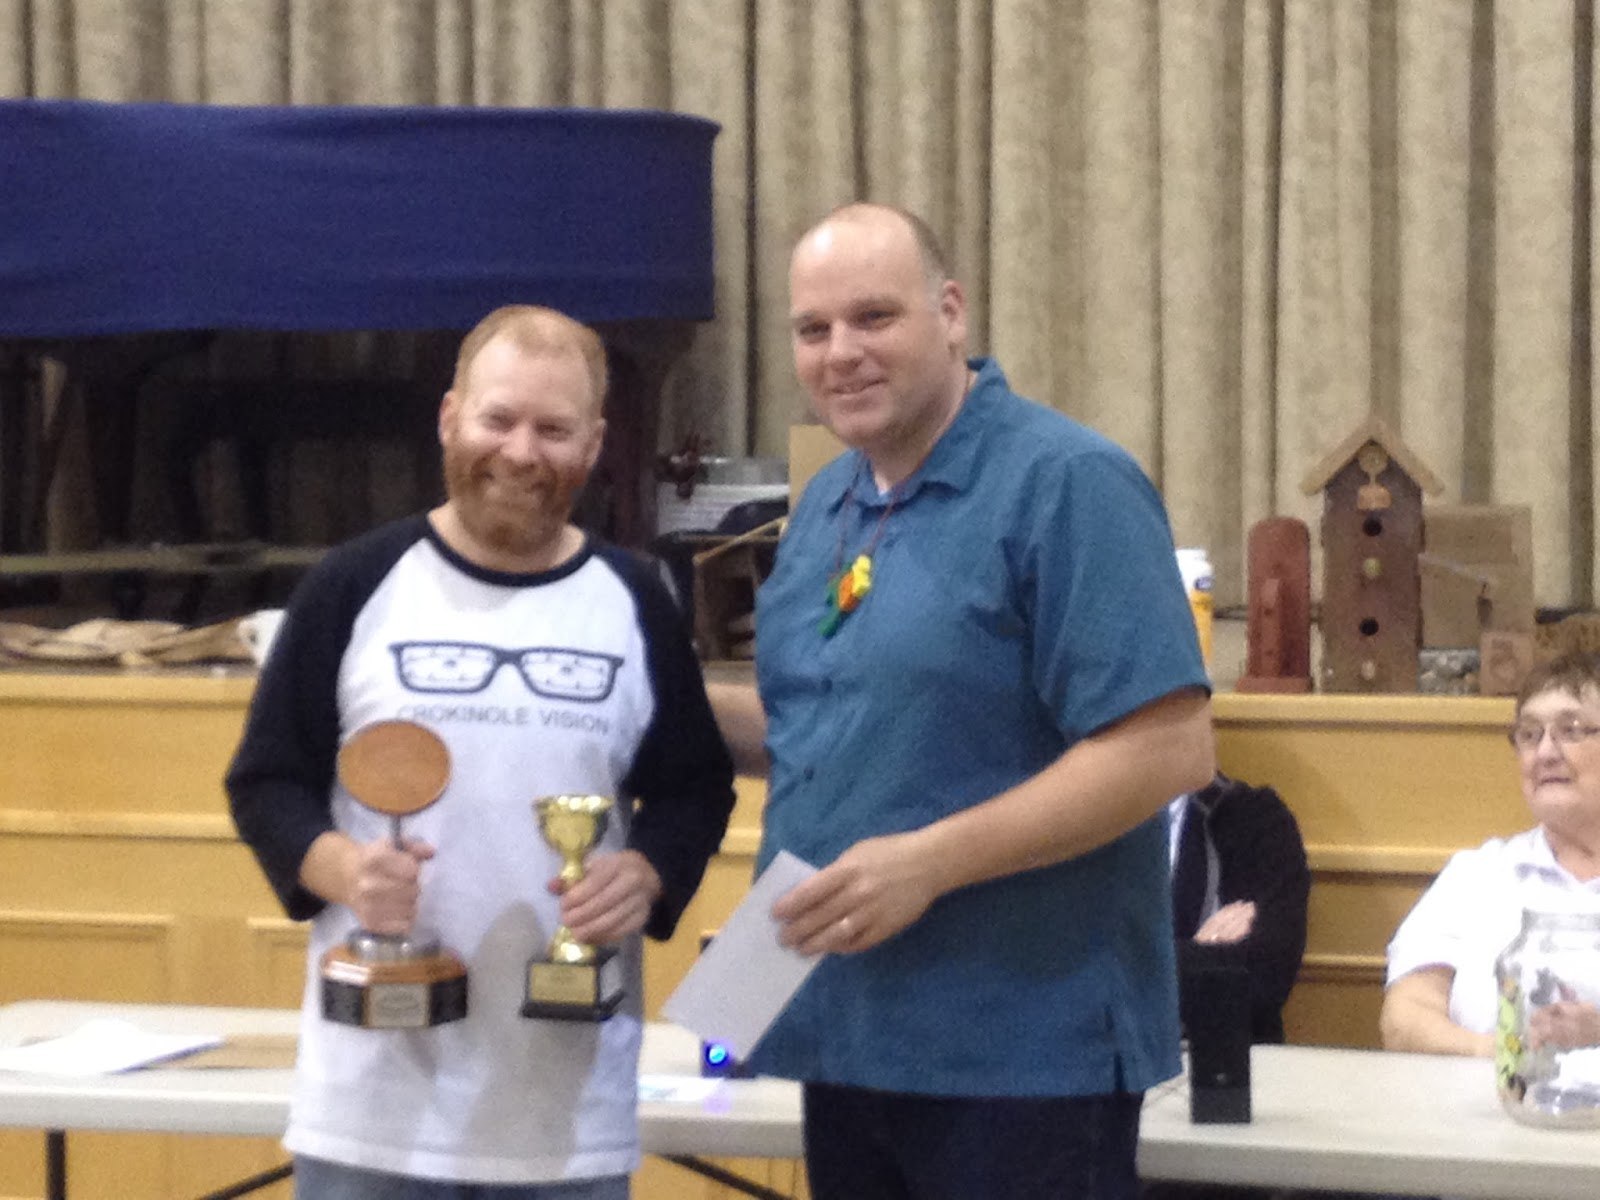 Ray Beierling accepts top prize from tournament emcee, Joe Richards